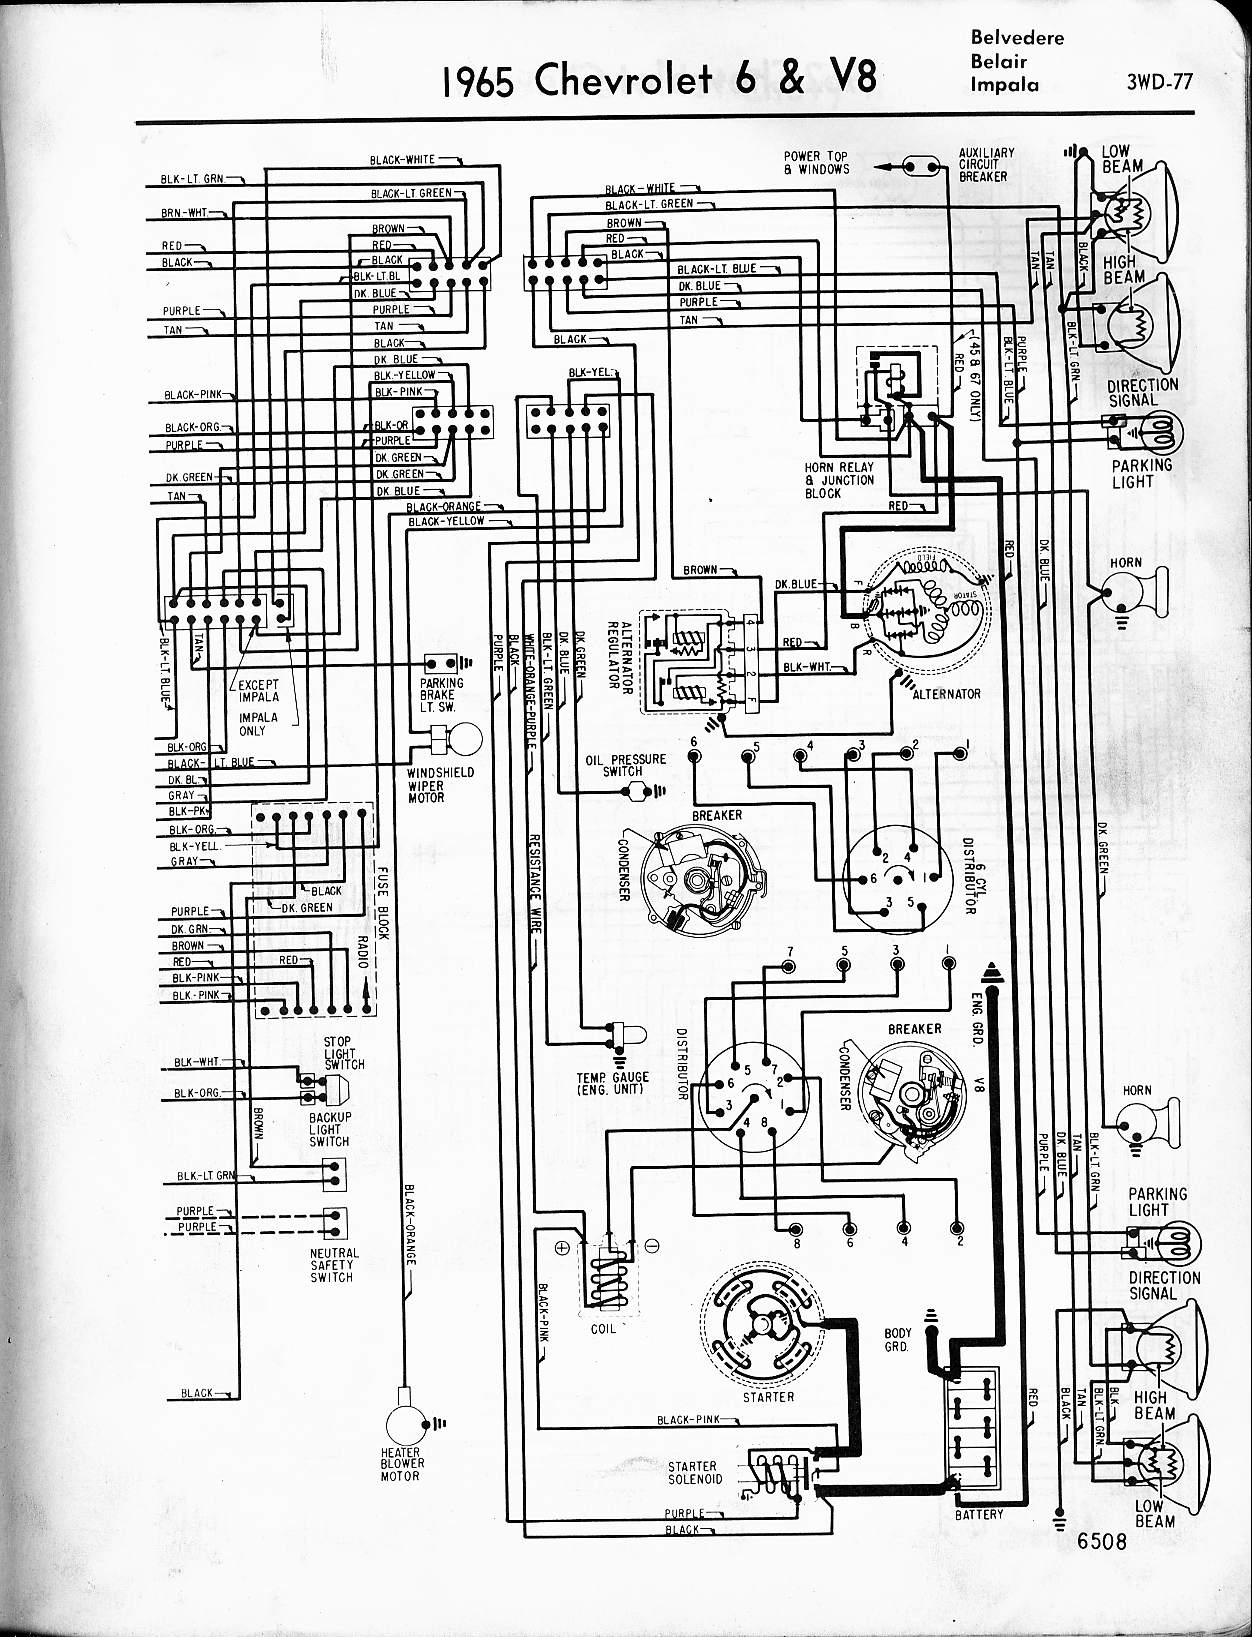 MWireChev65_3WD 077 chevy diagrams 1970 chevelle headlight switch wiring diagram at gsmx.co